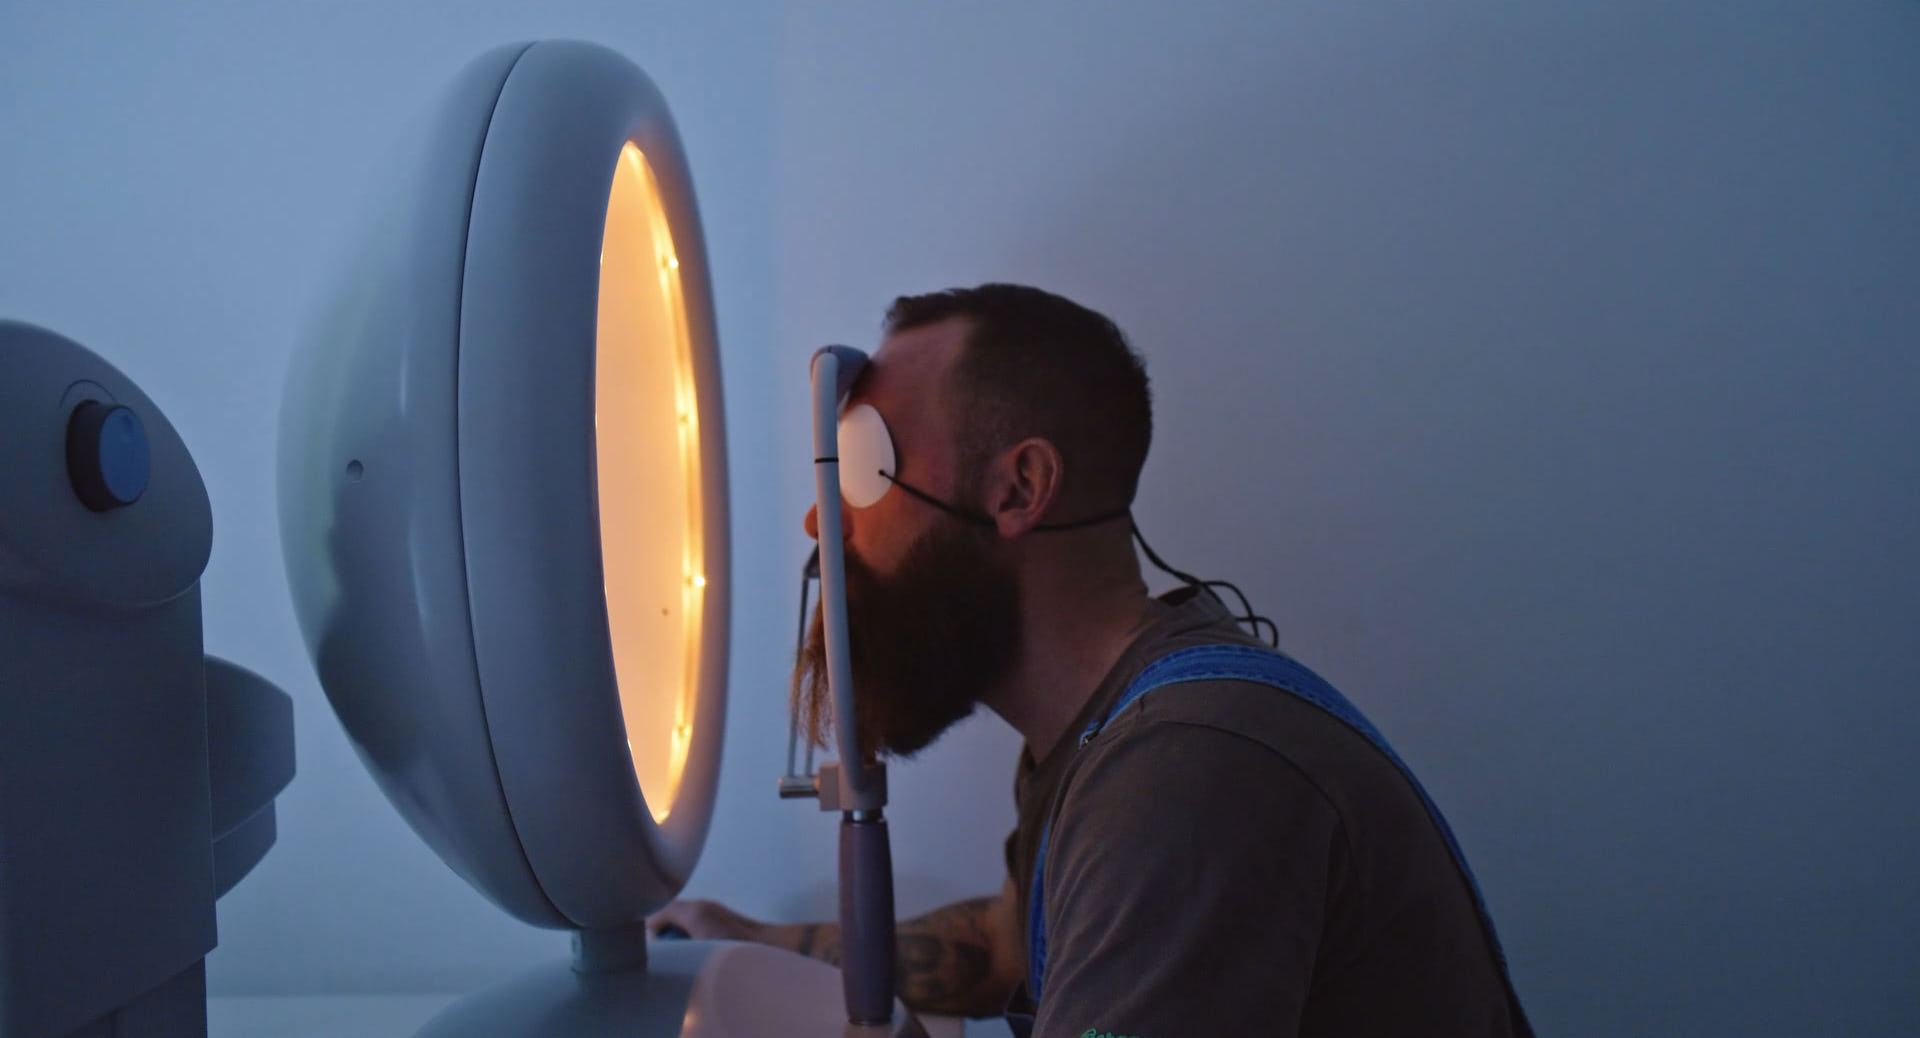 A man with an eye patch at a medical eye exam looking into a yellow light